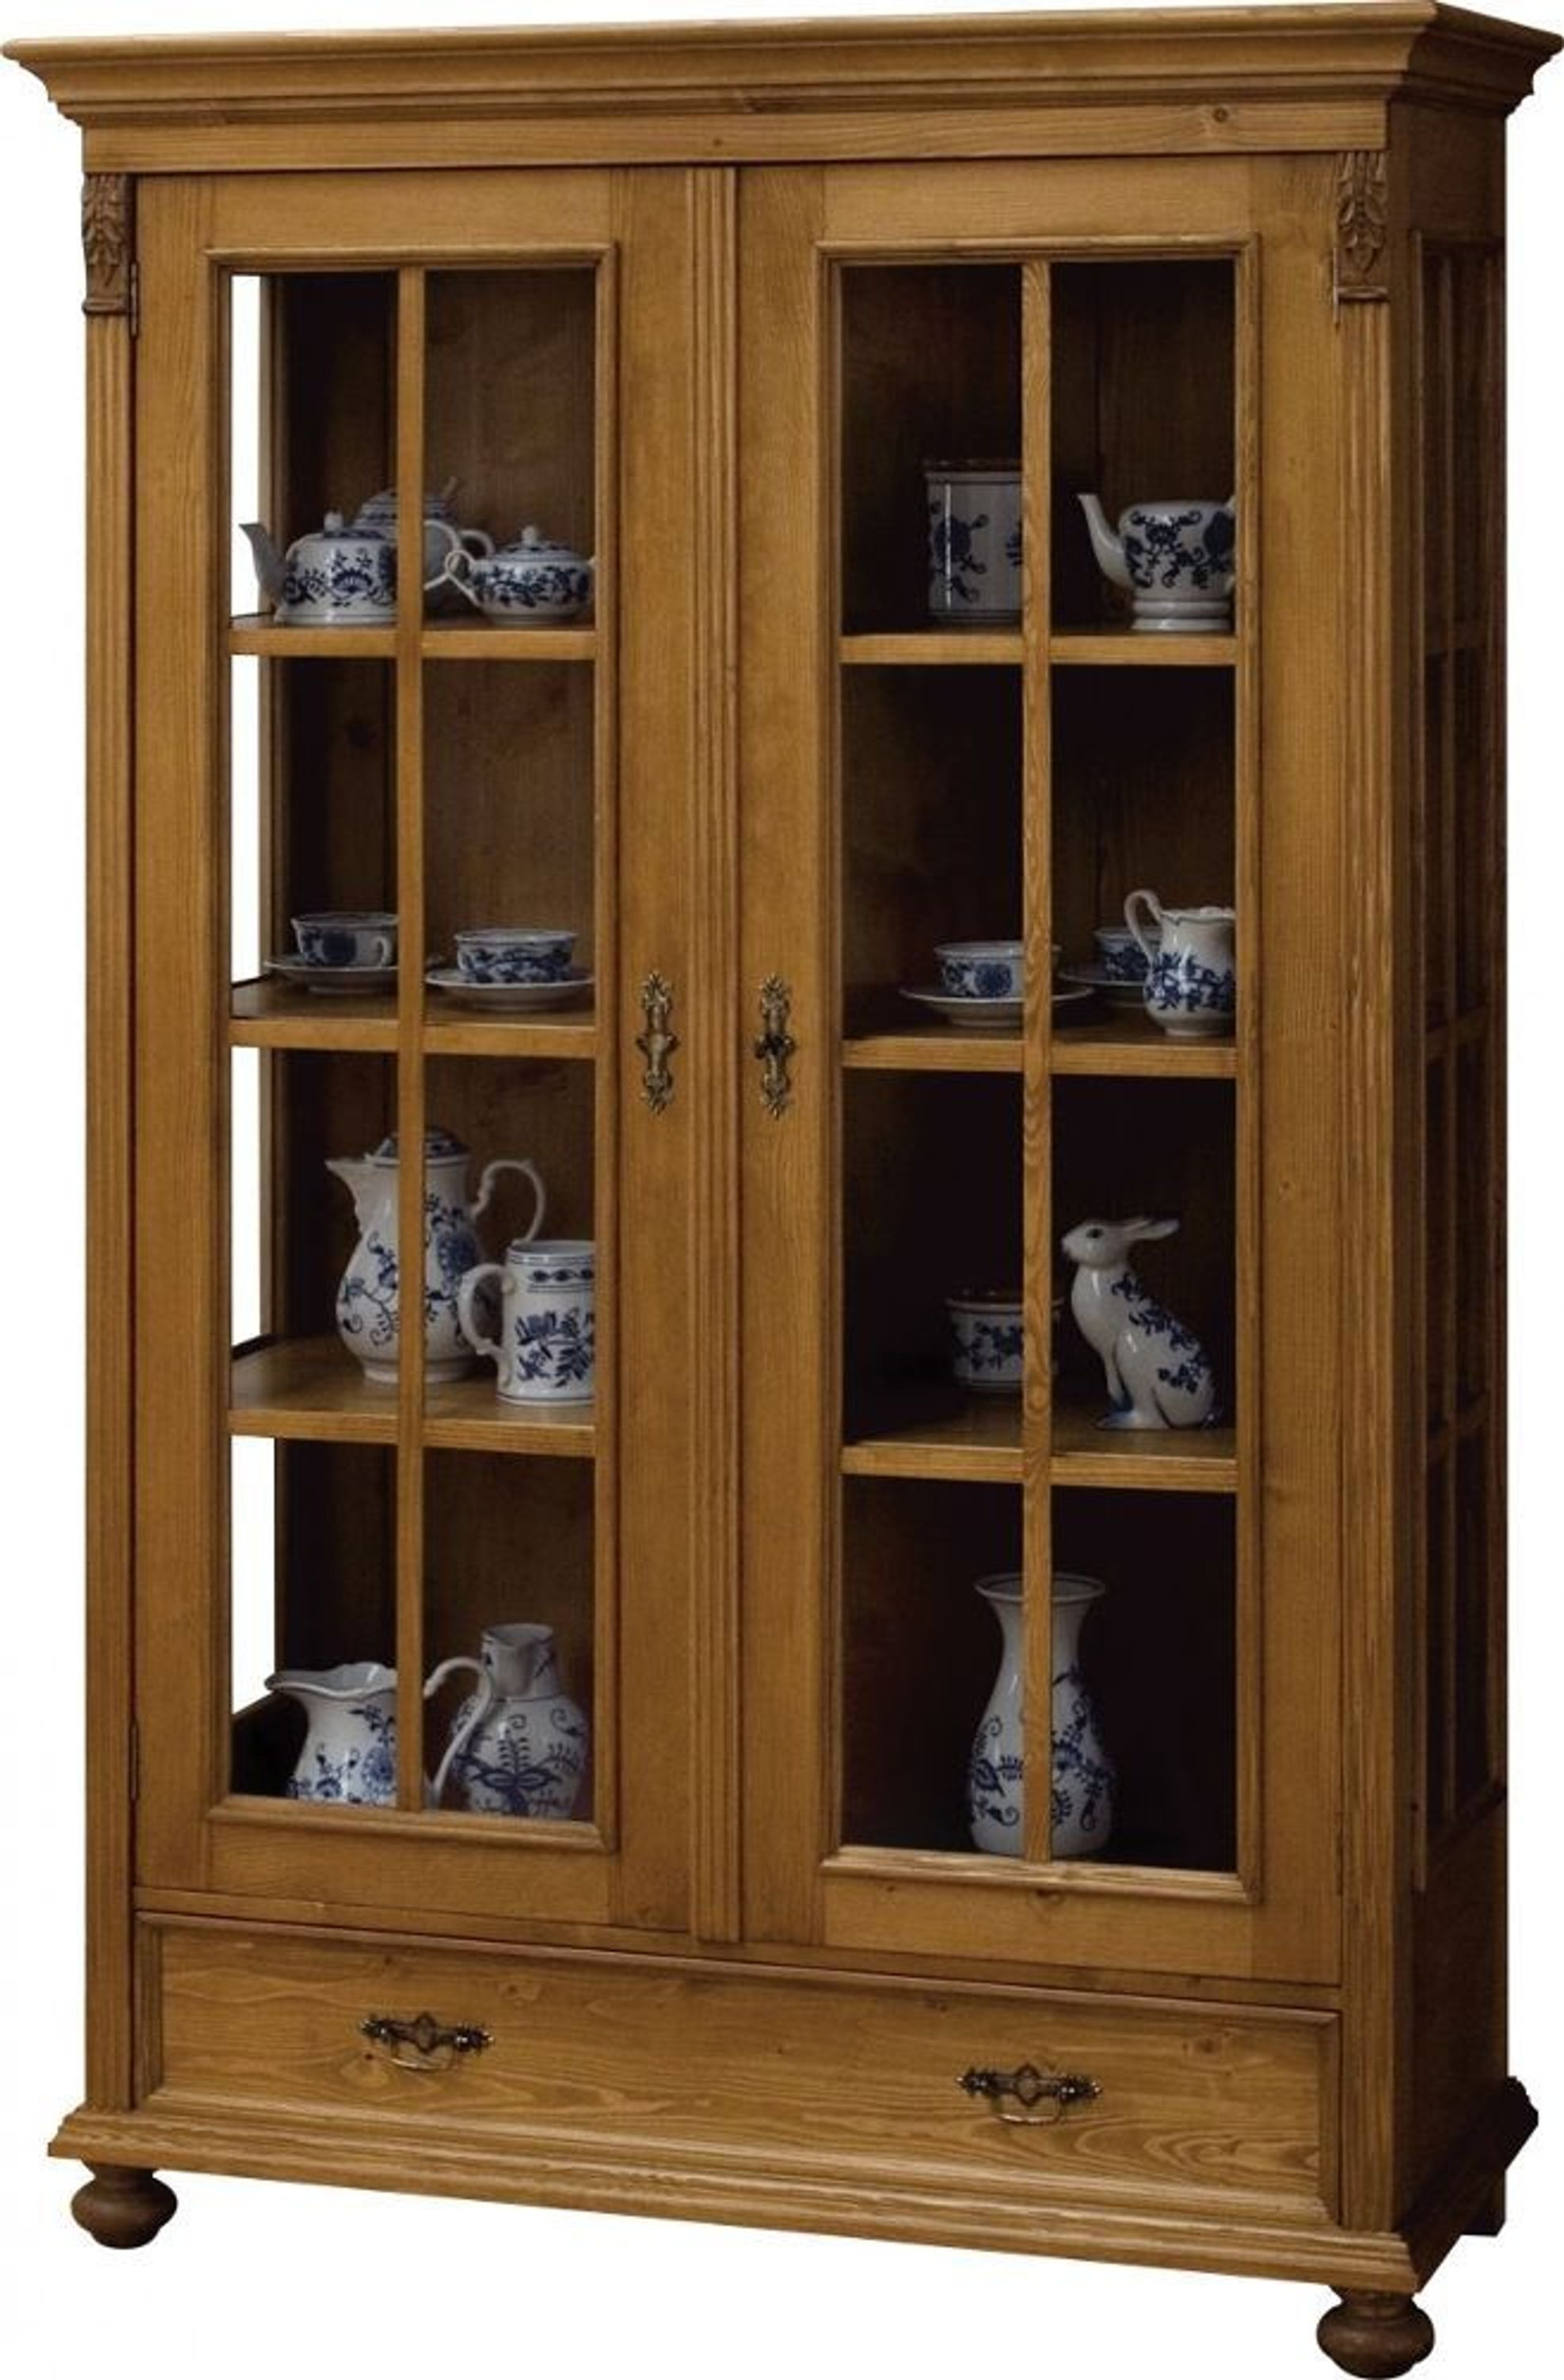 vitrine vitrinenschrank esszimmer schrank fichte massiv antik landhaus 1880 kaufen bei. Black Bedroom Furniture Sets. Home Design Ideas